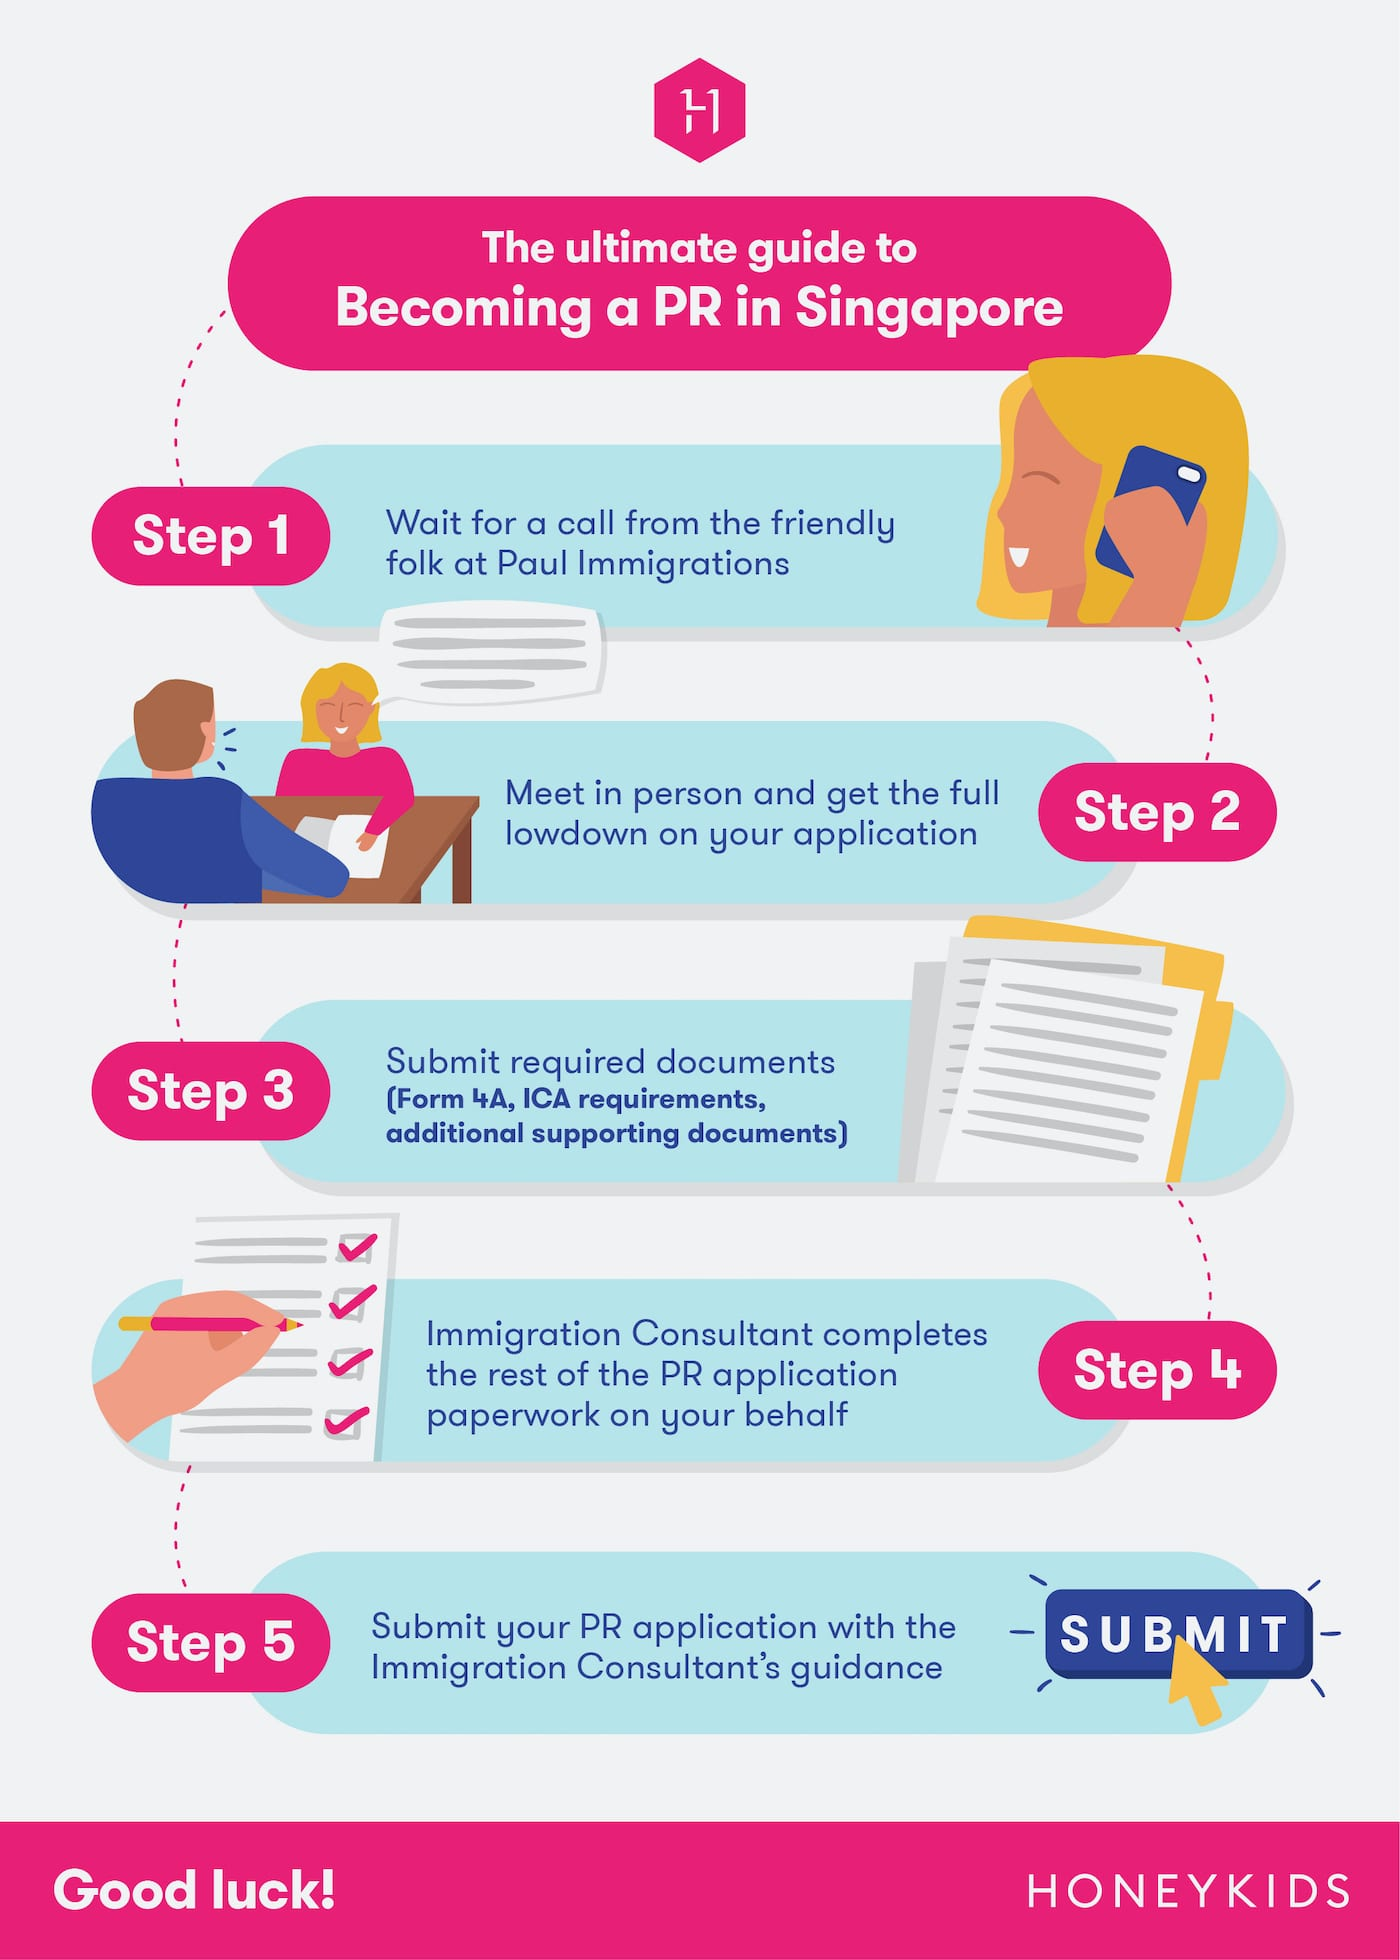 The ultimate guide to becoming a PR in Singapore